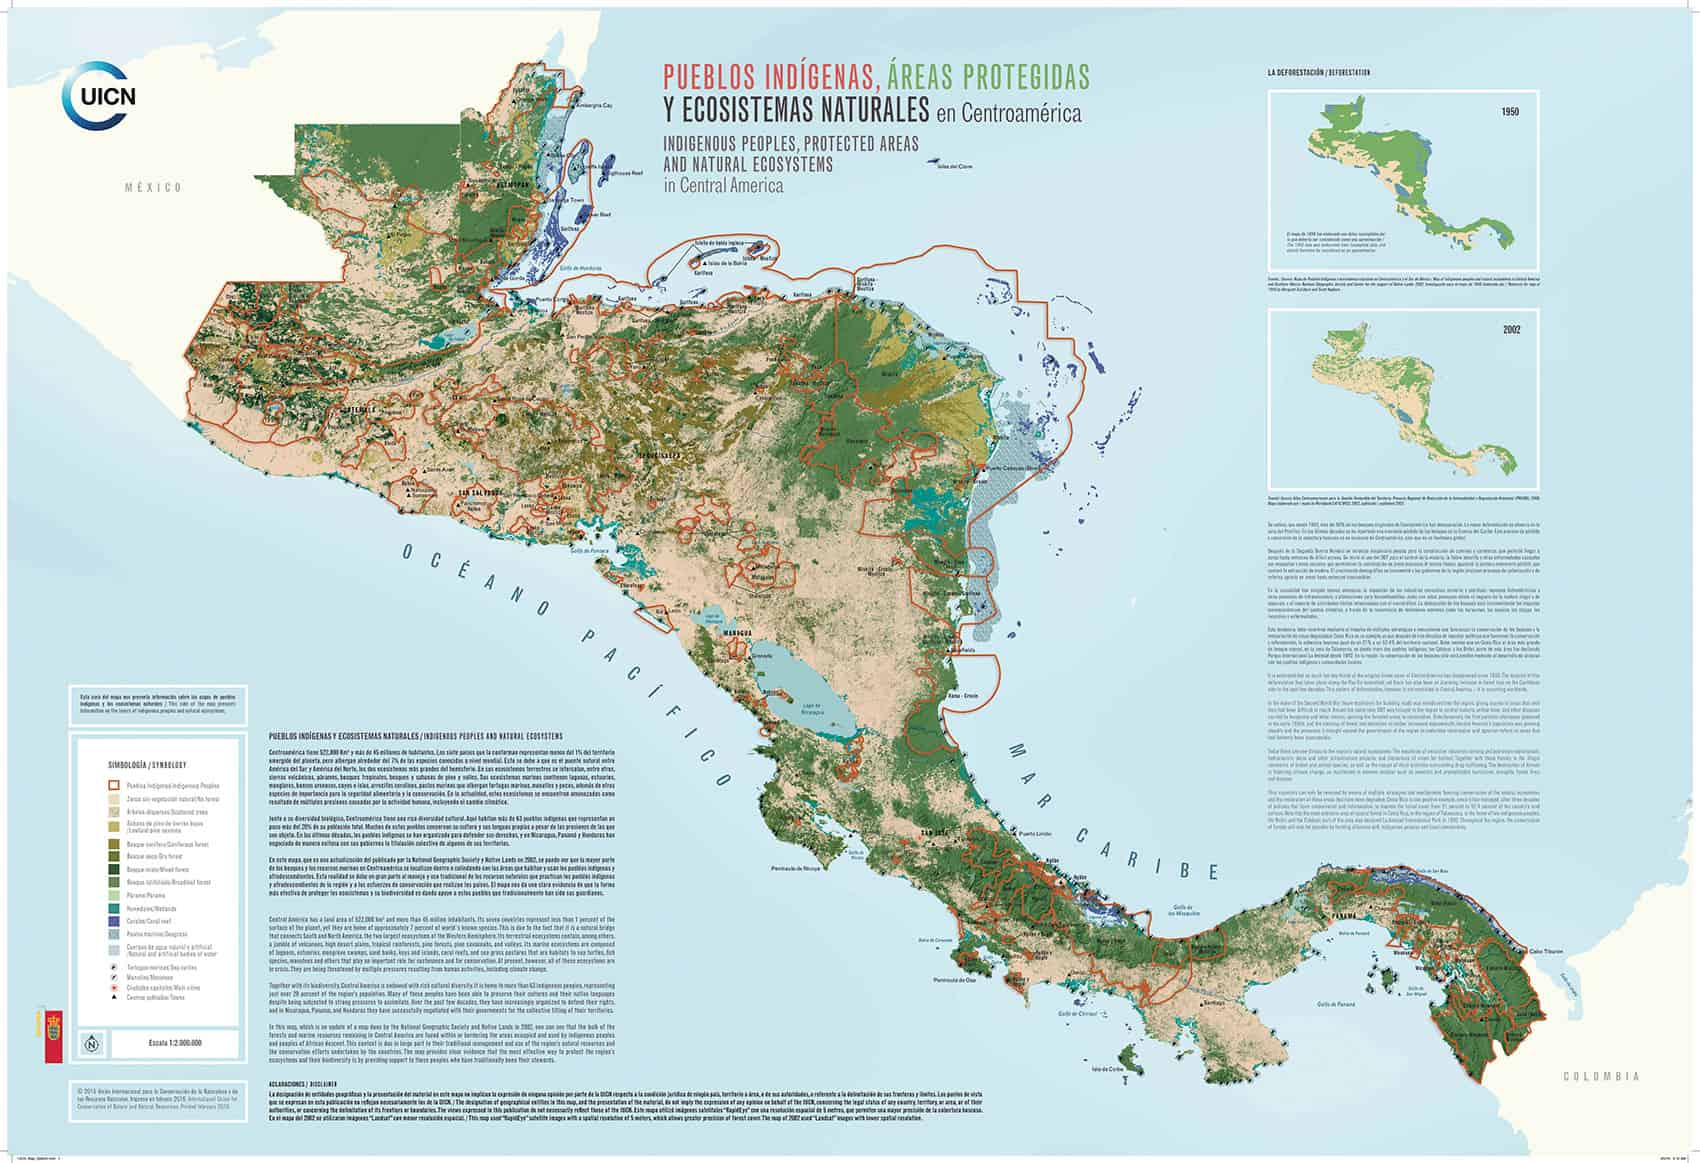 mpa of Central America indigenous communities